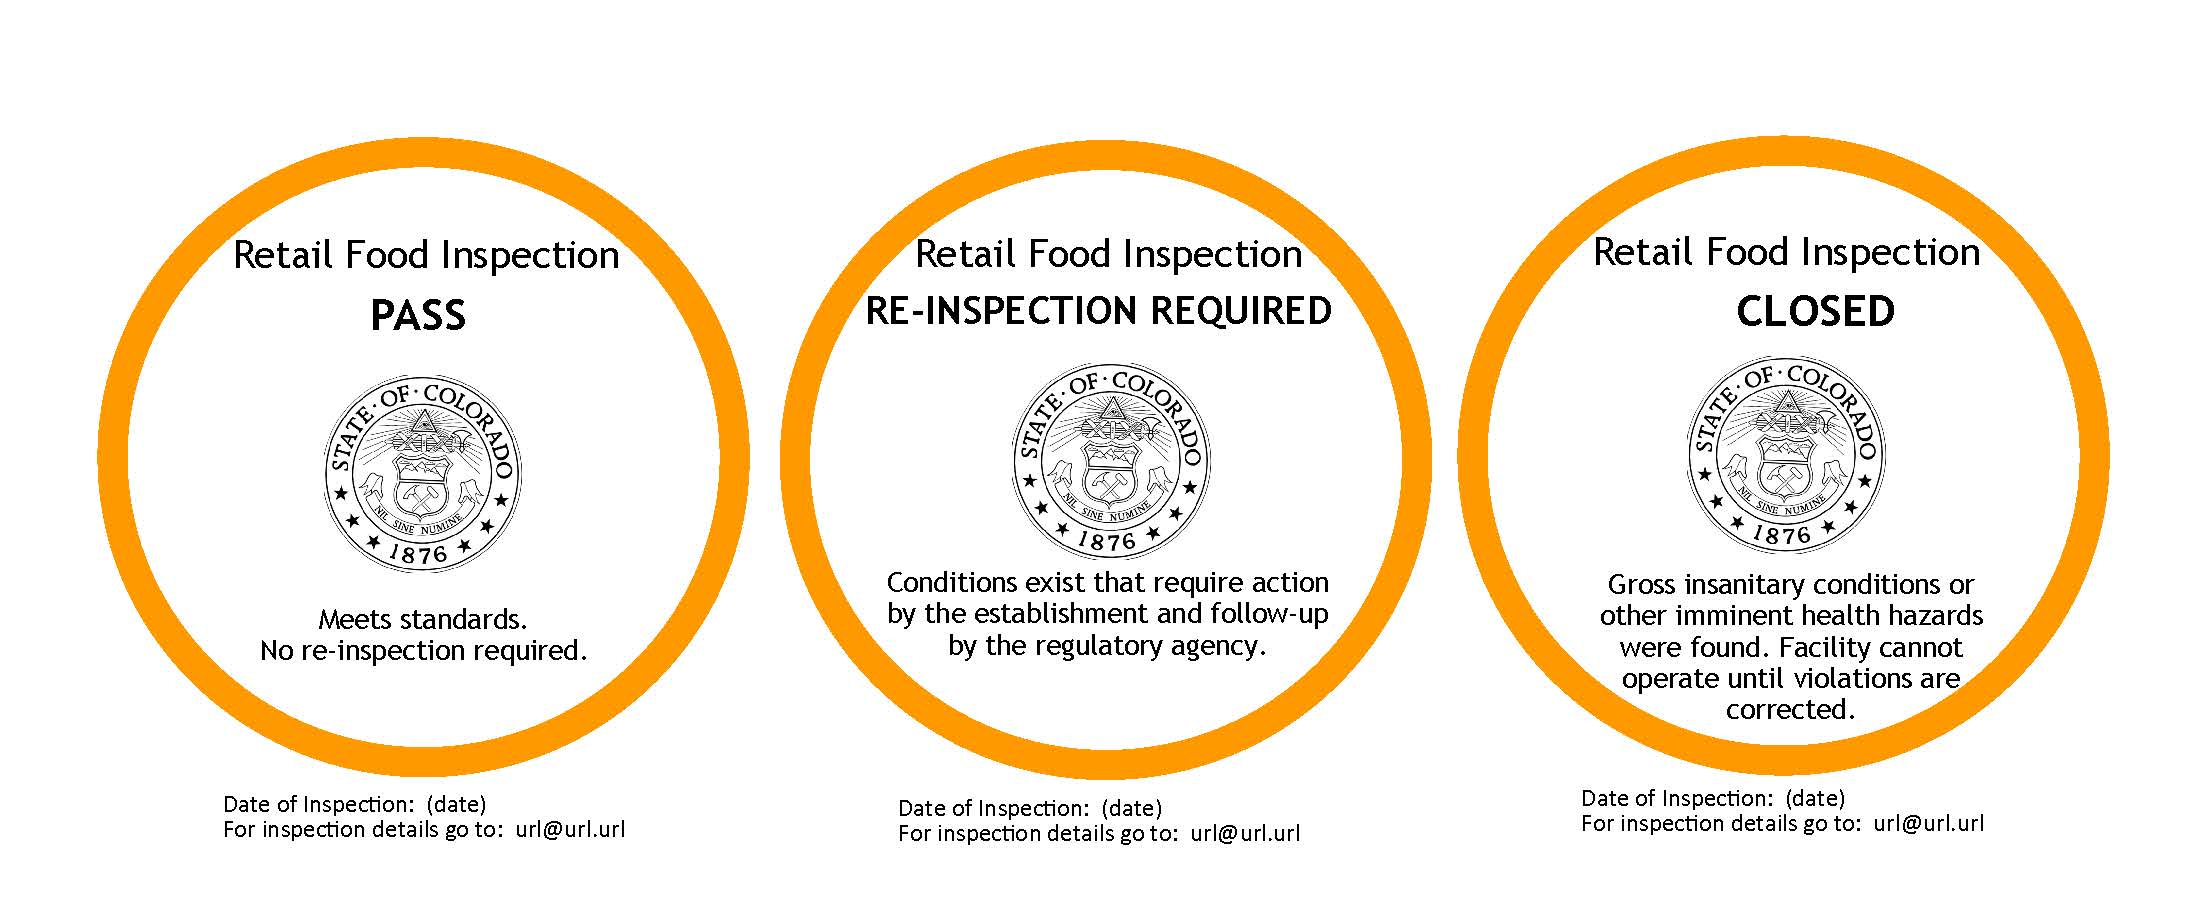 "The next question refers to the current Colorado Retail Food Establishment Inspection Rating System and is pictured below. Following a food safety inspection, the retail food establishment is rated as ""Pass"", ""Re-inspection Required"", or ""Closed."""